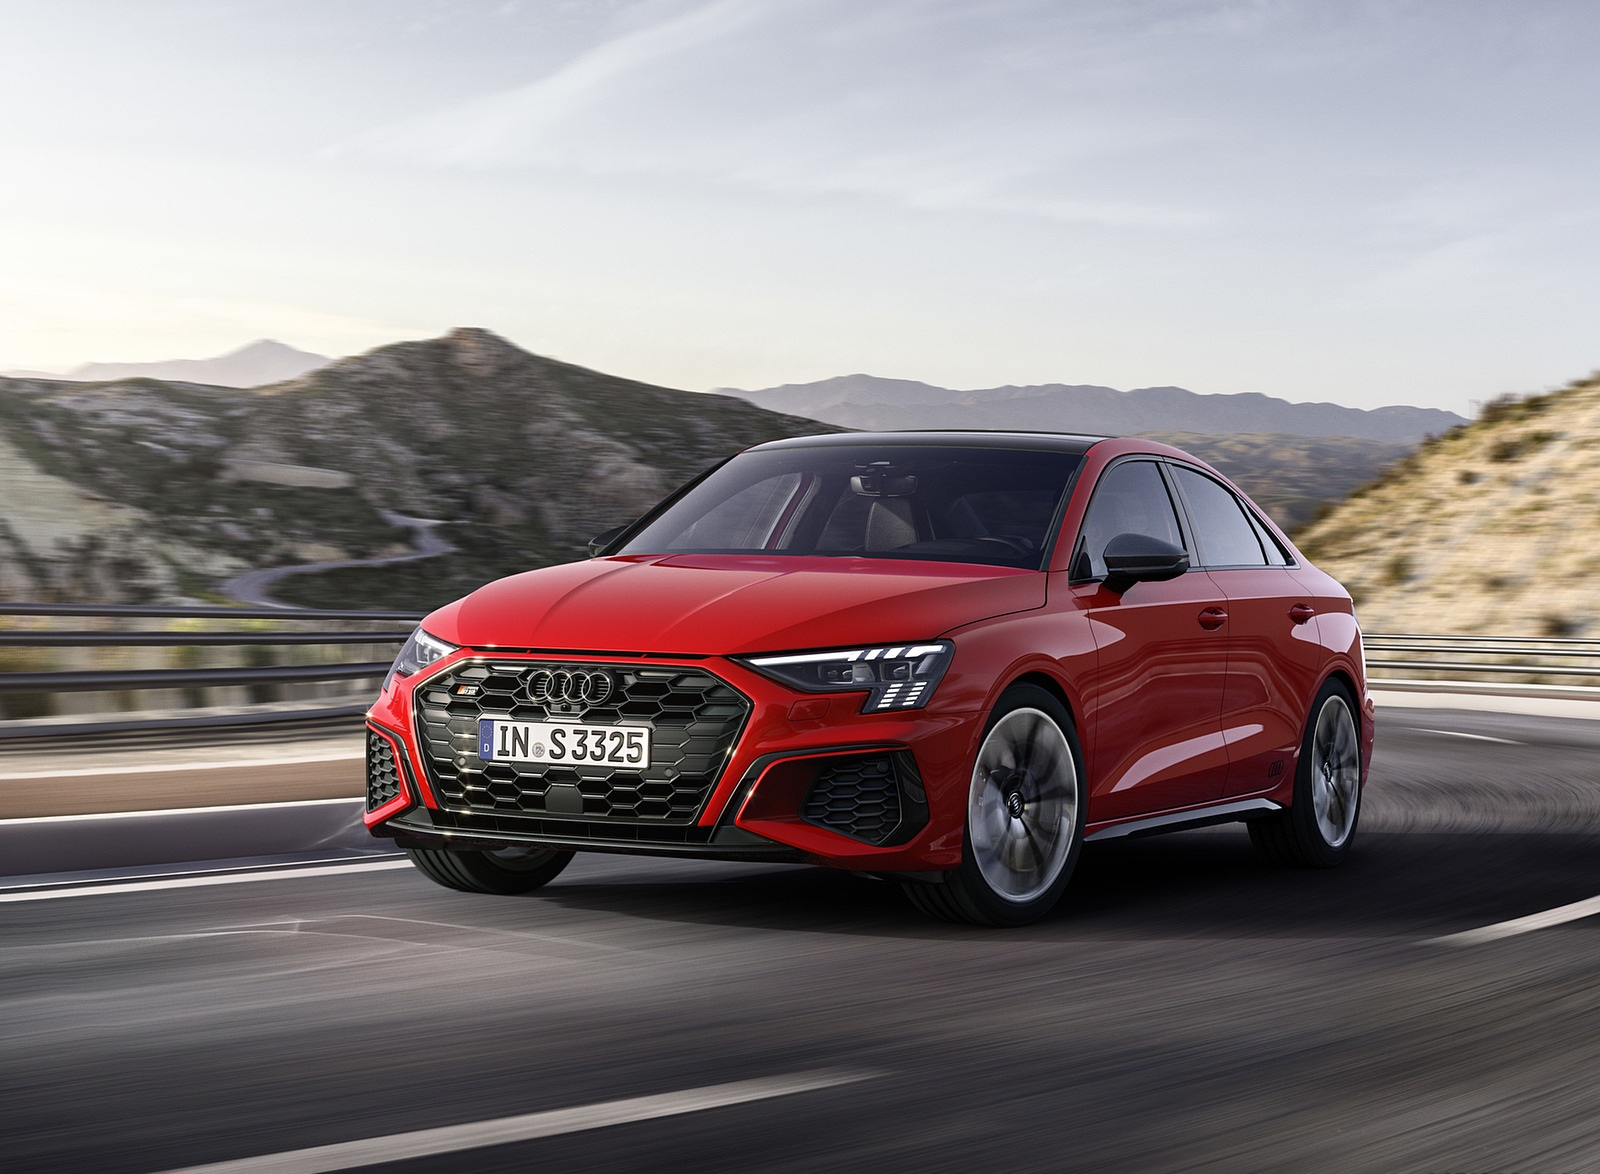 2021 Audi S3 Sedan (Color: Tango Red) Front Three-Quarter Wallpapers (1)